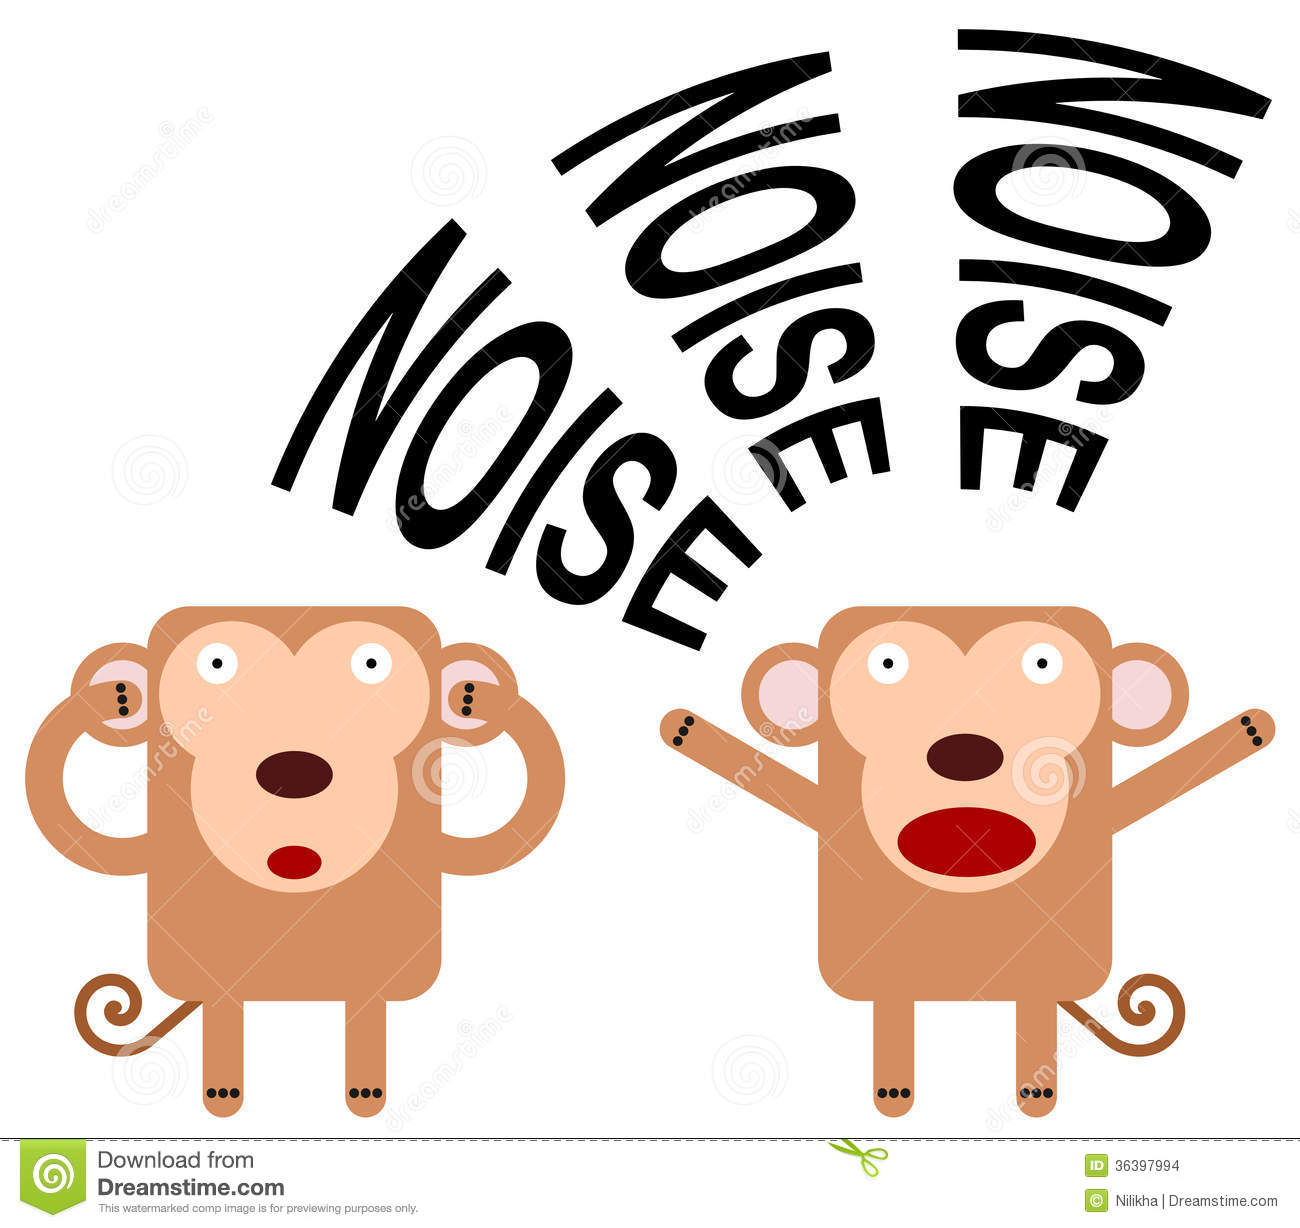 Animal Noise Clipart.